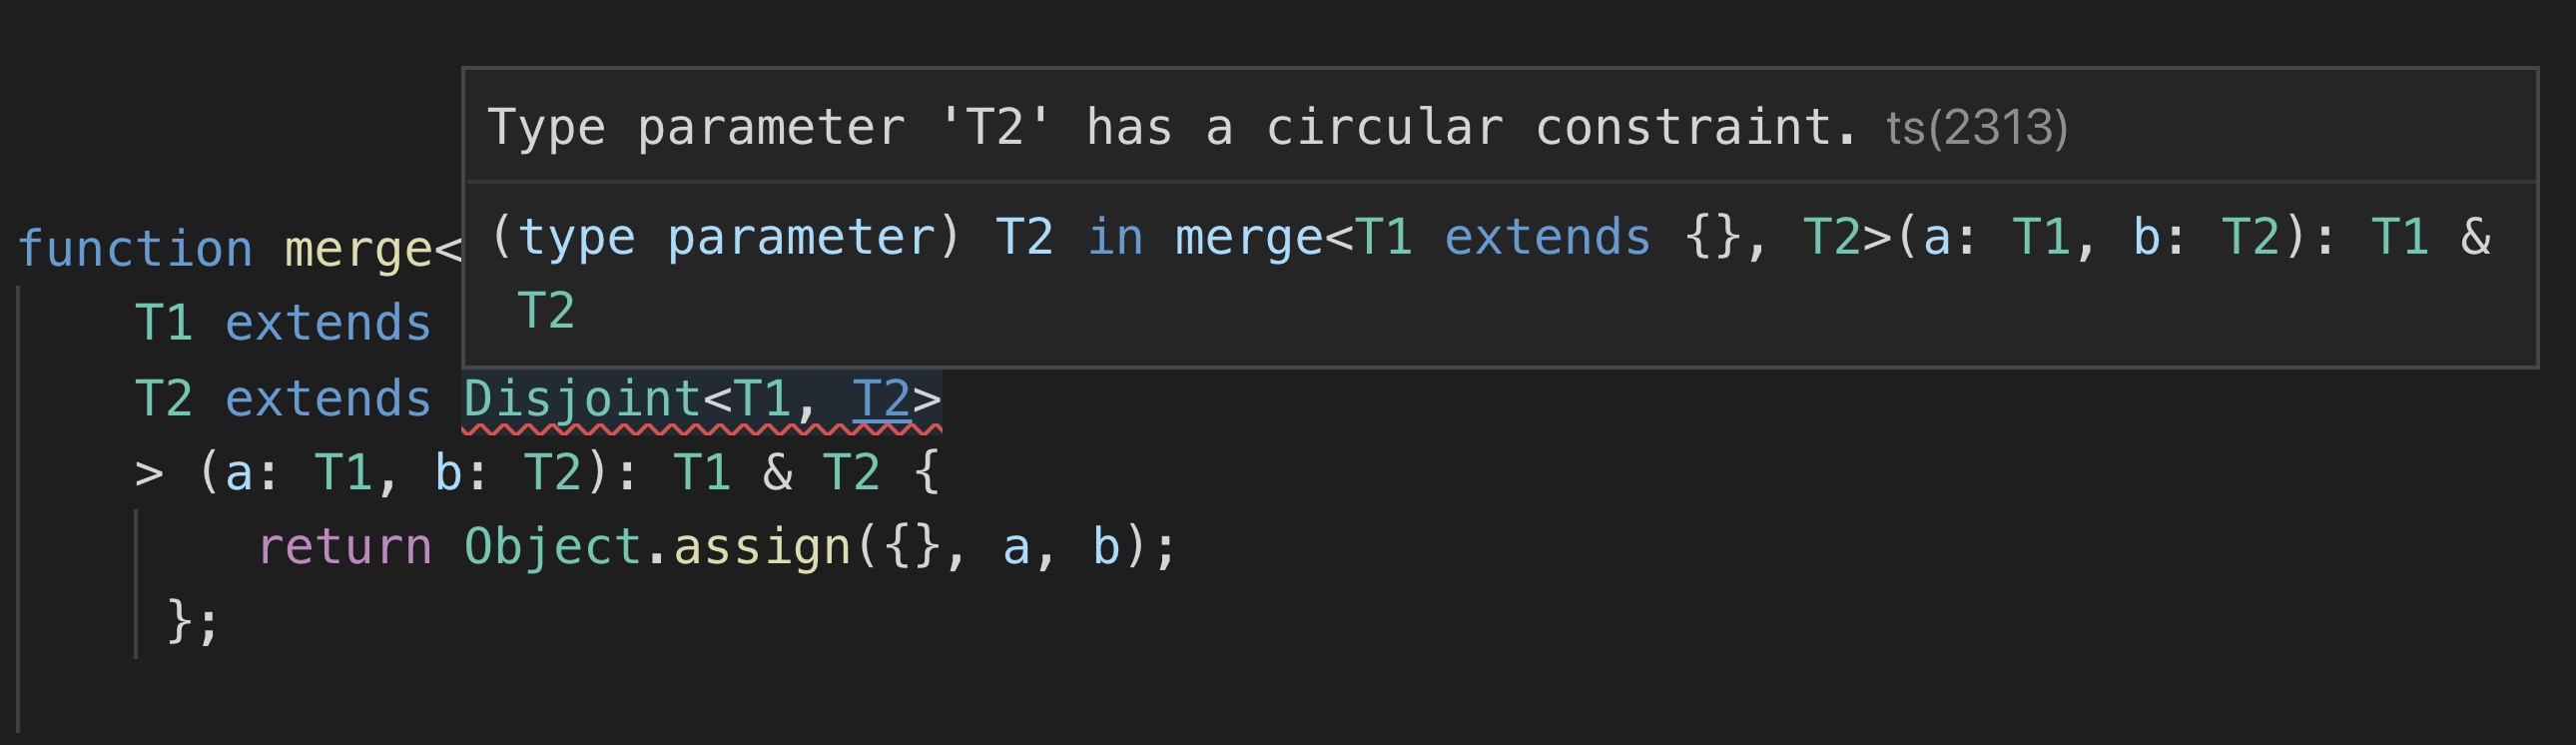 Circular constraints in generic types